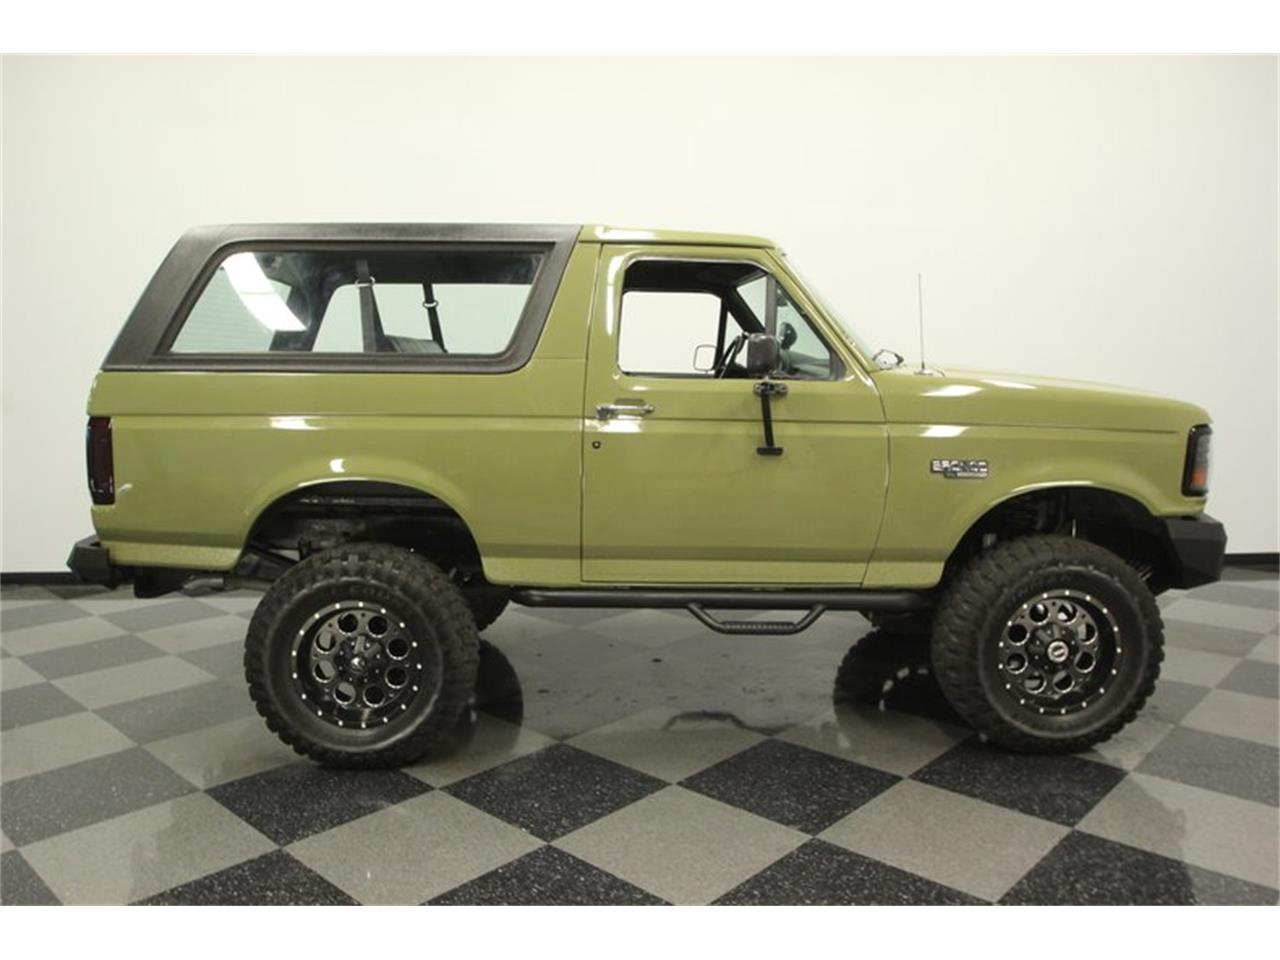 1996 Ford Bronco for sale in Lutz, FL – photo 31